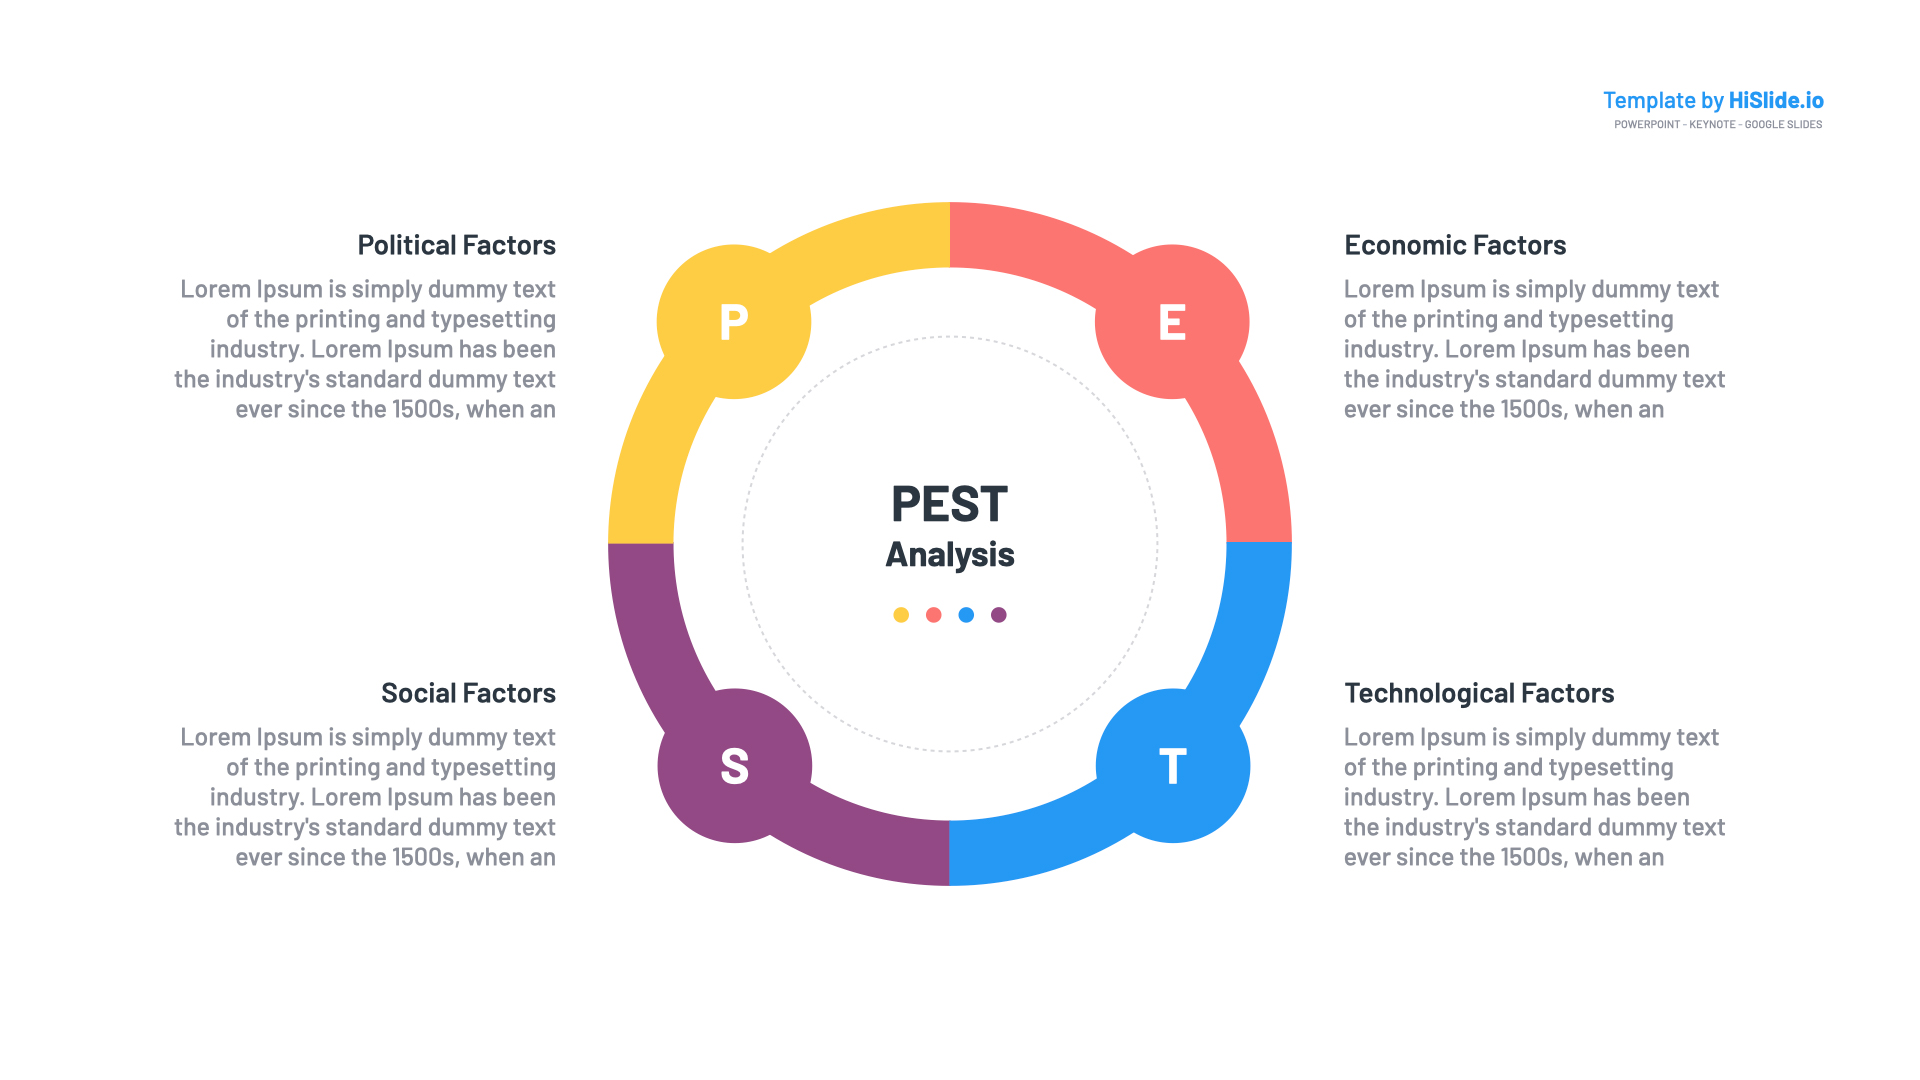 PEST analysis marketing template